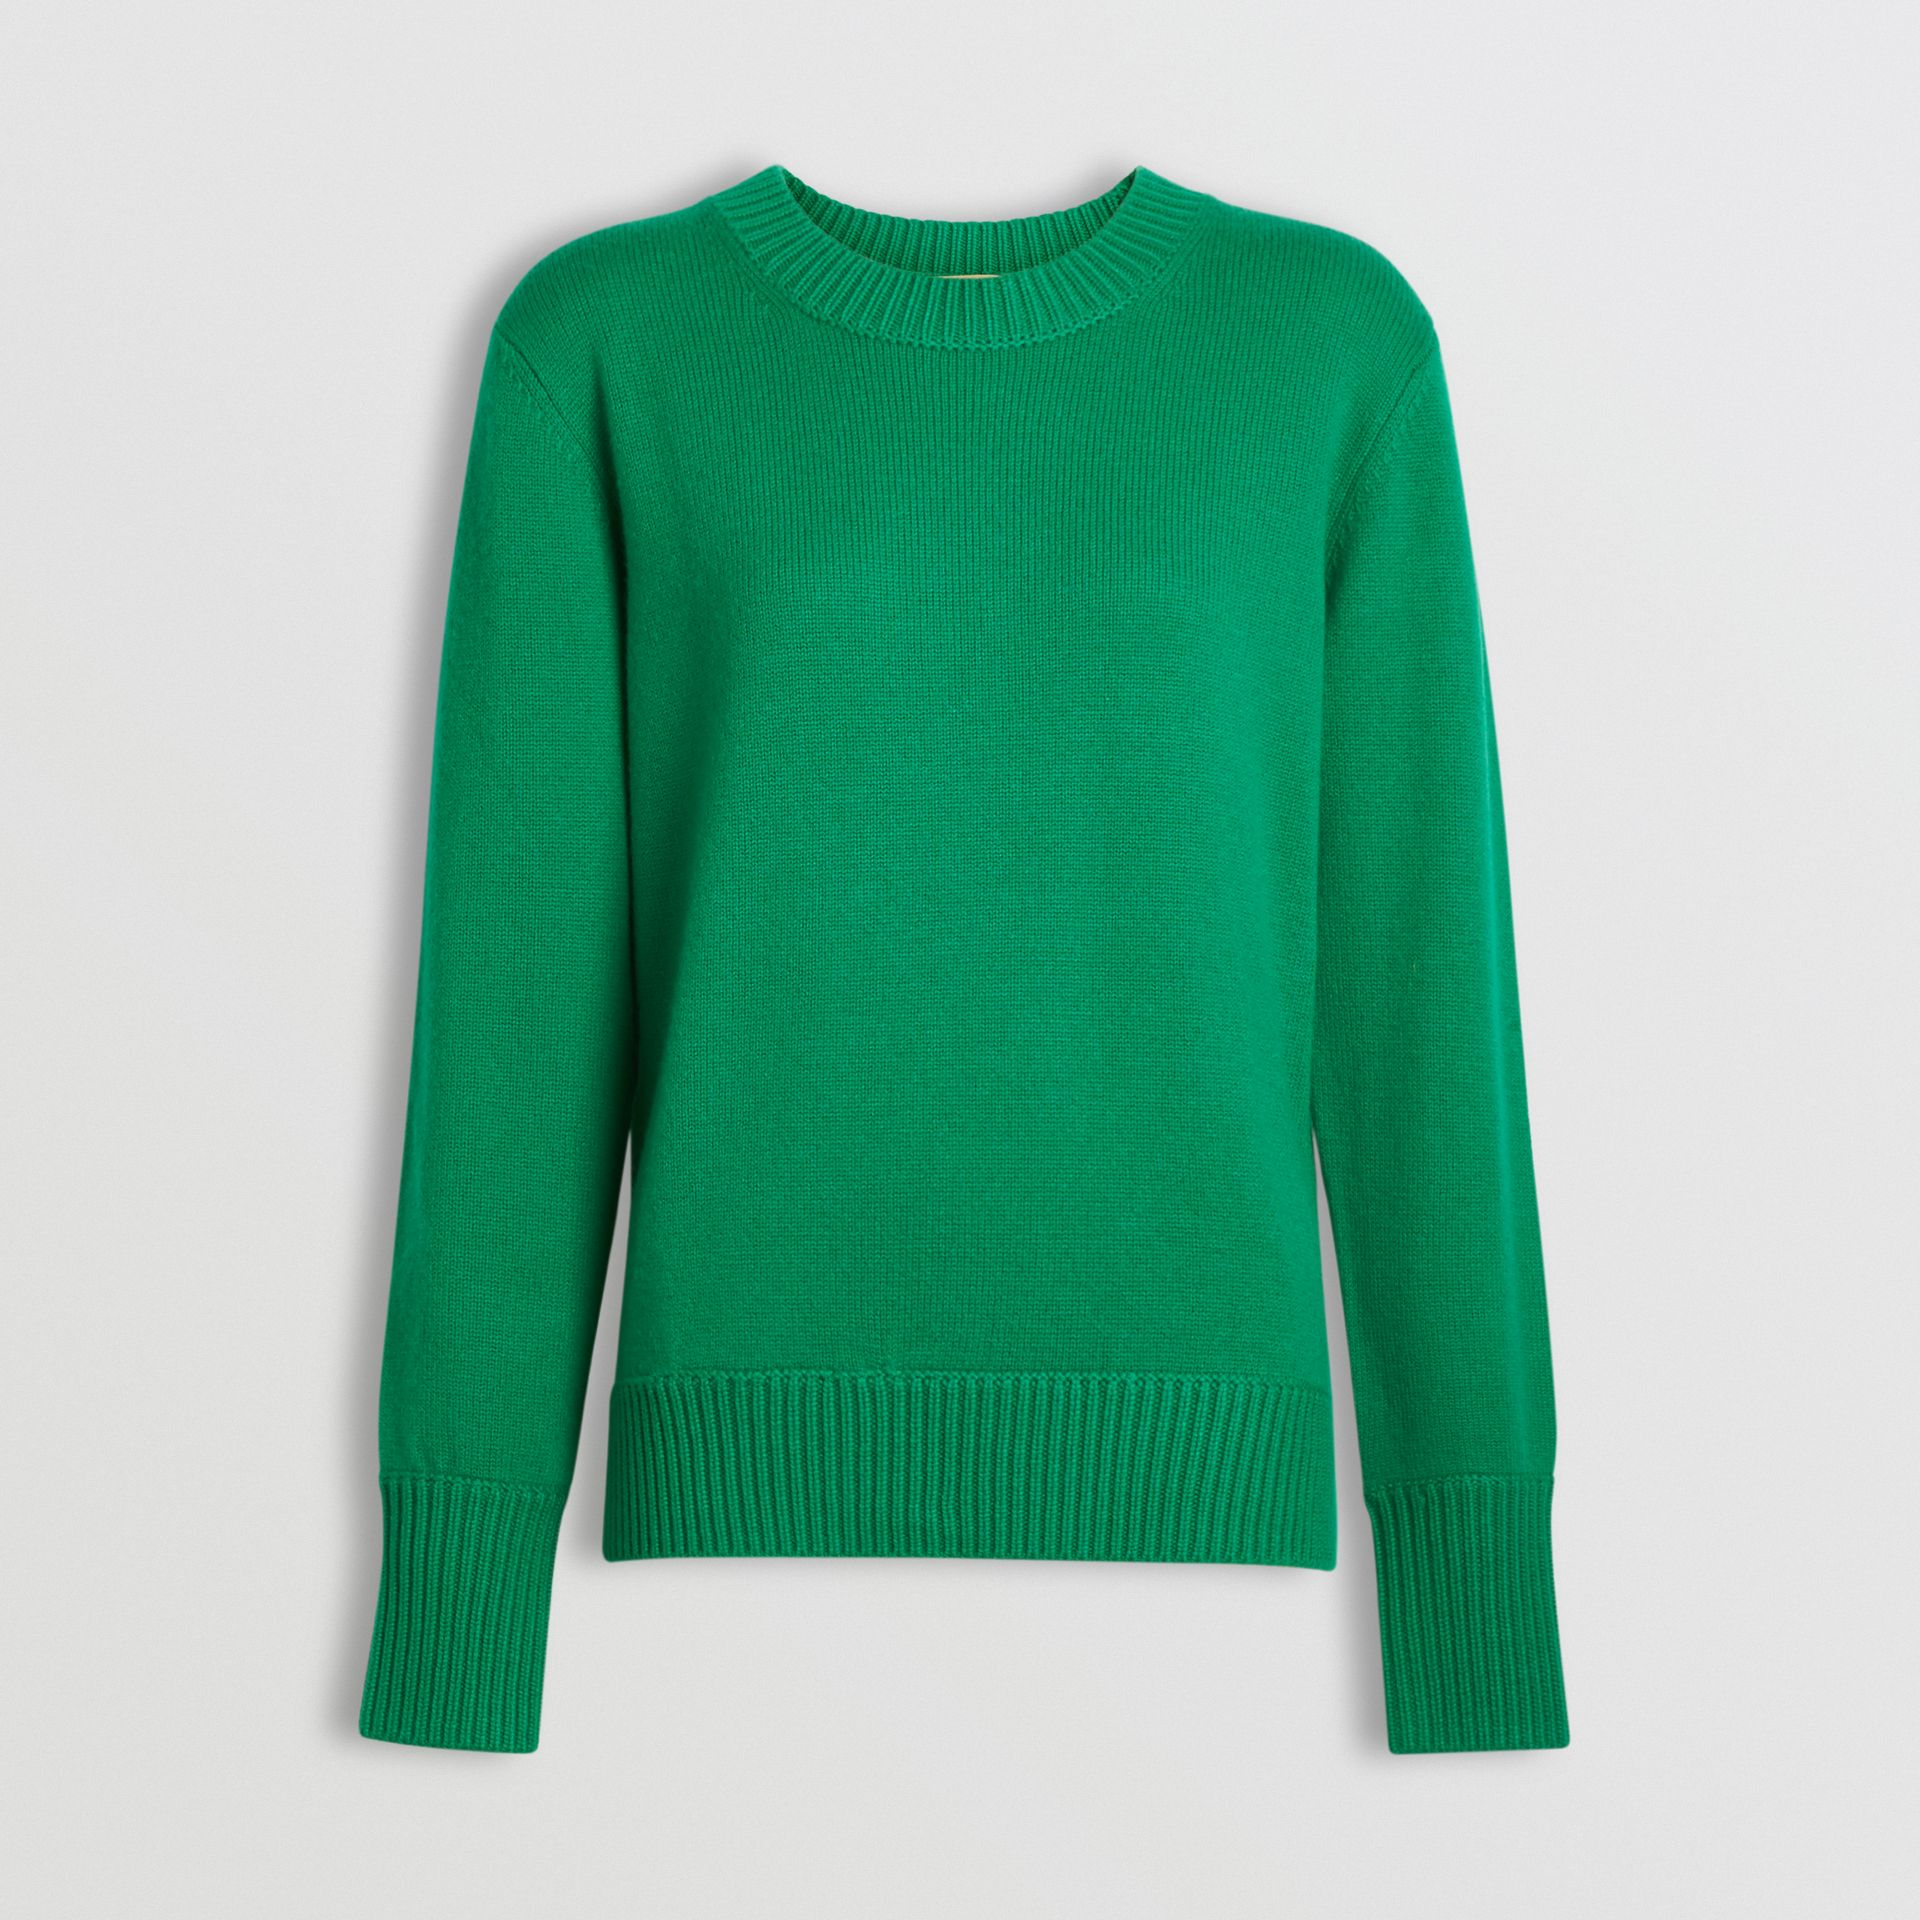 Archive Logo Appliqué Cashmere Sweater in Vibrant Green - Women | Burberry United States - gallery image 3